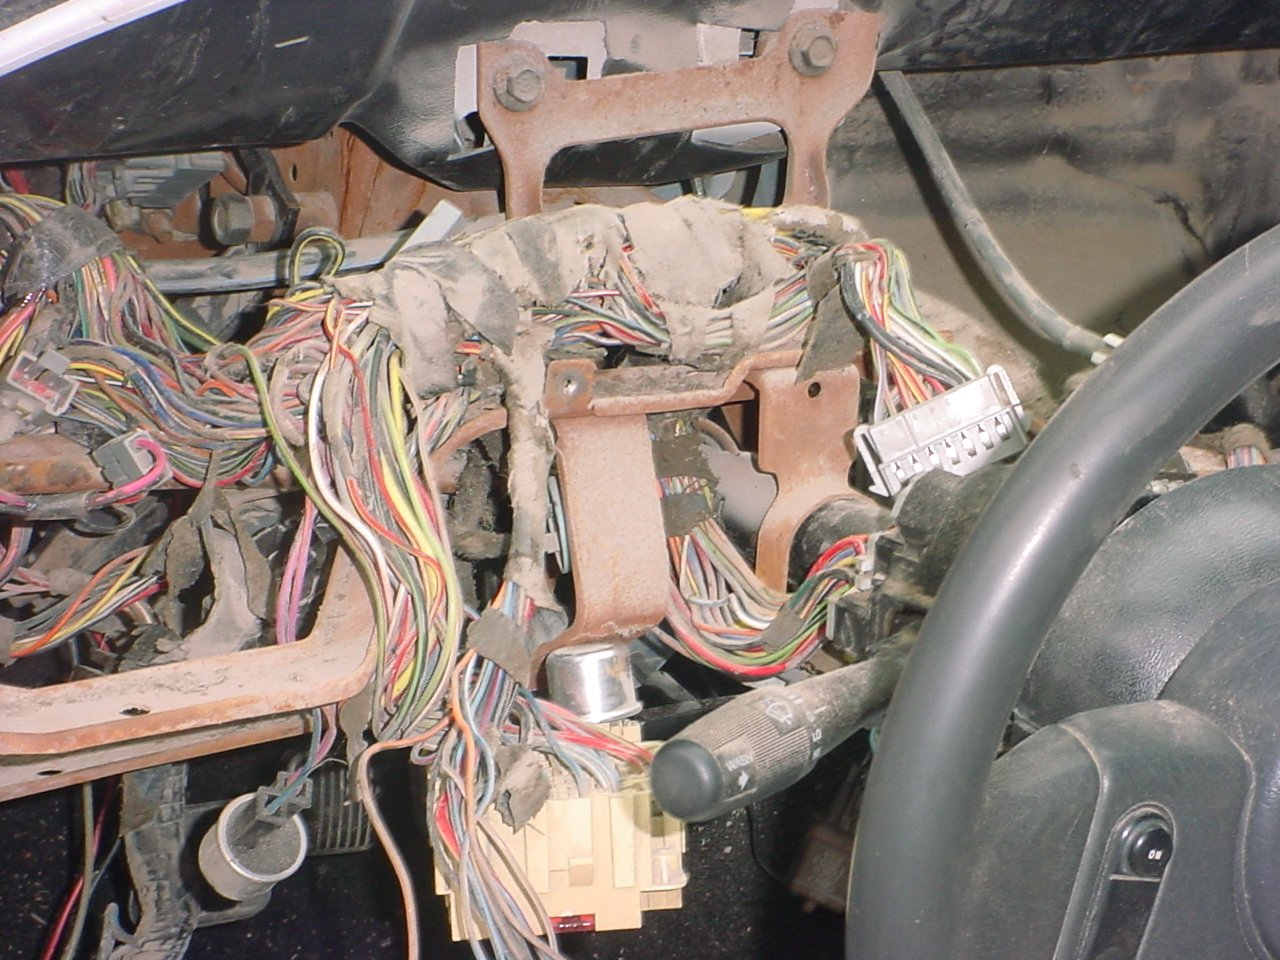 12808d1134269196 underdash wiring diagram dsc01663 underdash wiring diagram ford mustang forum 1991 ford mustang wiring diagram at edmiracle.co